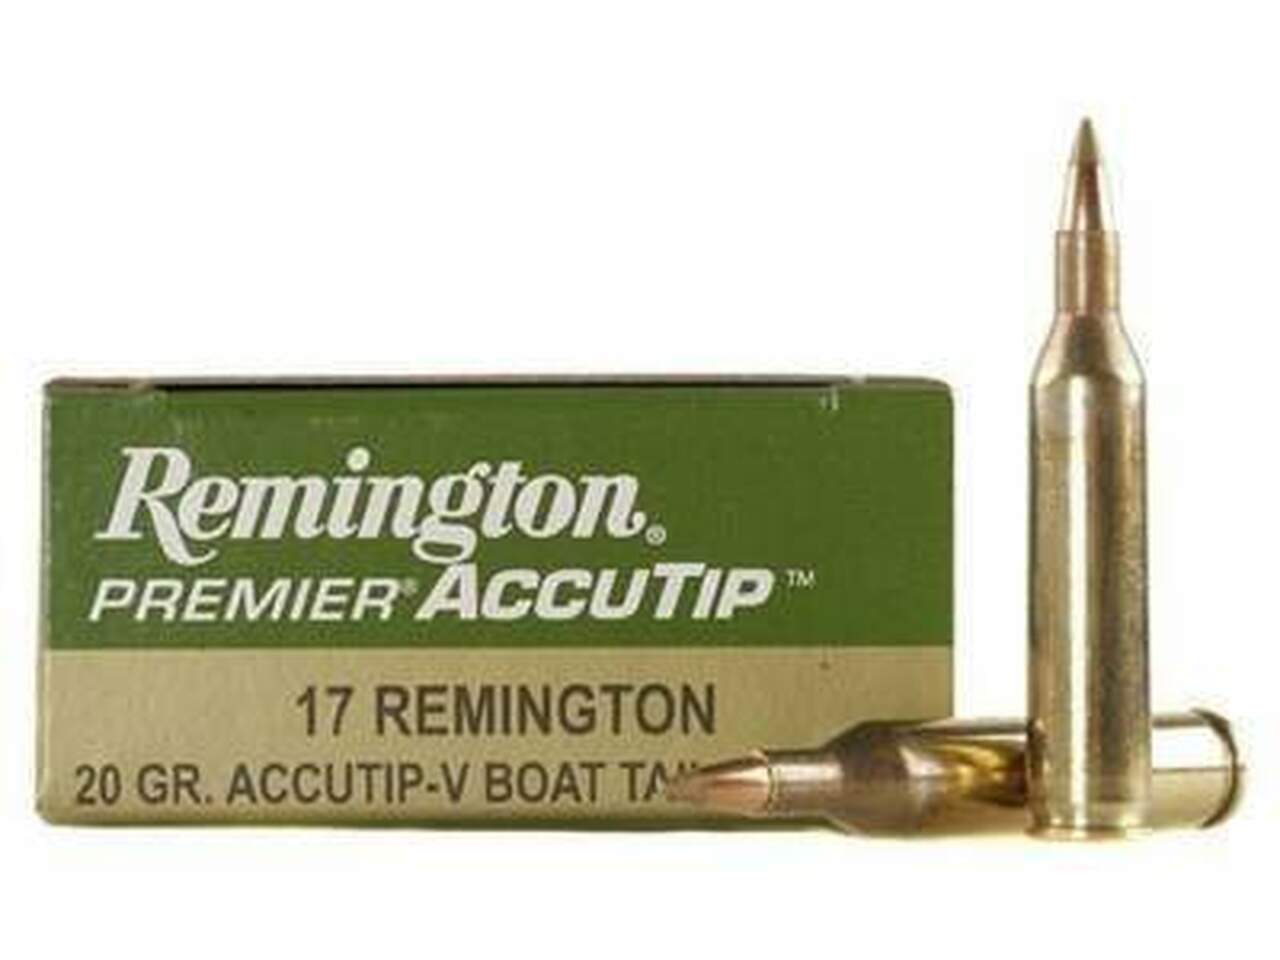 Rifle Ammo | Rifle Ammunition For Sale In Bulk Quantity | Outdoor